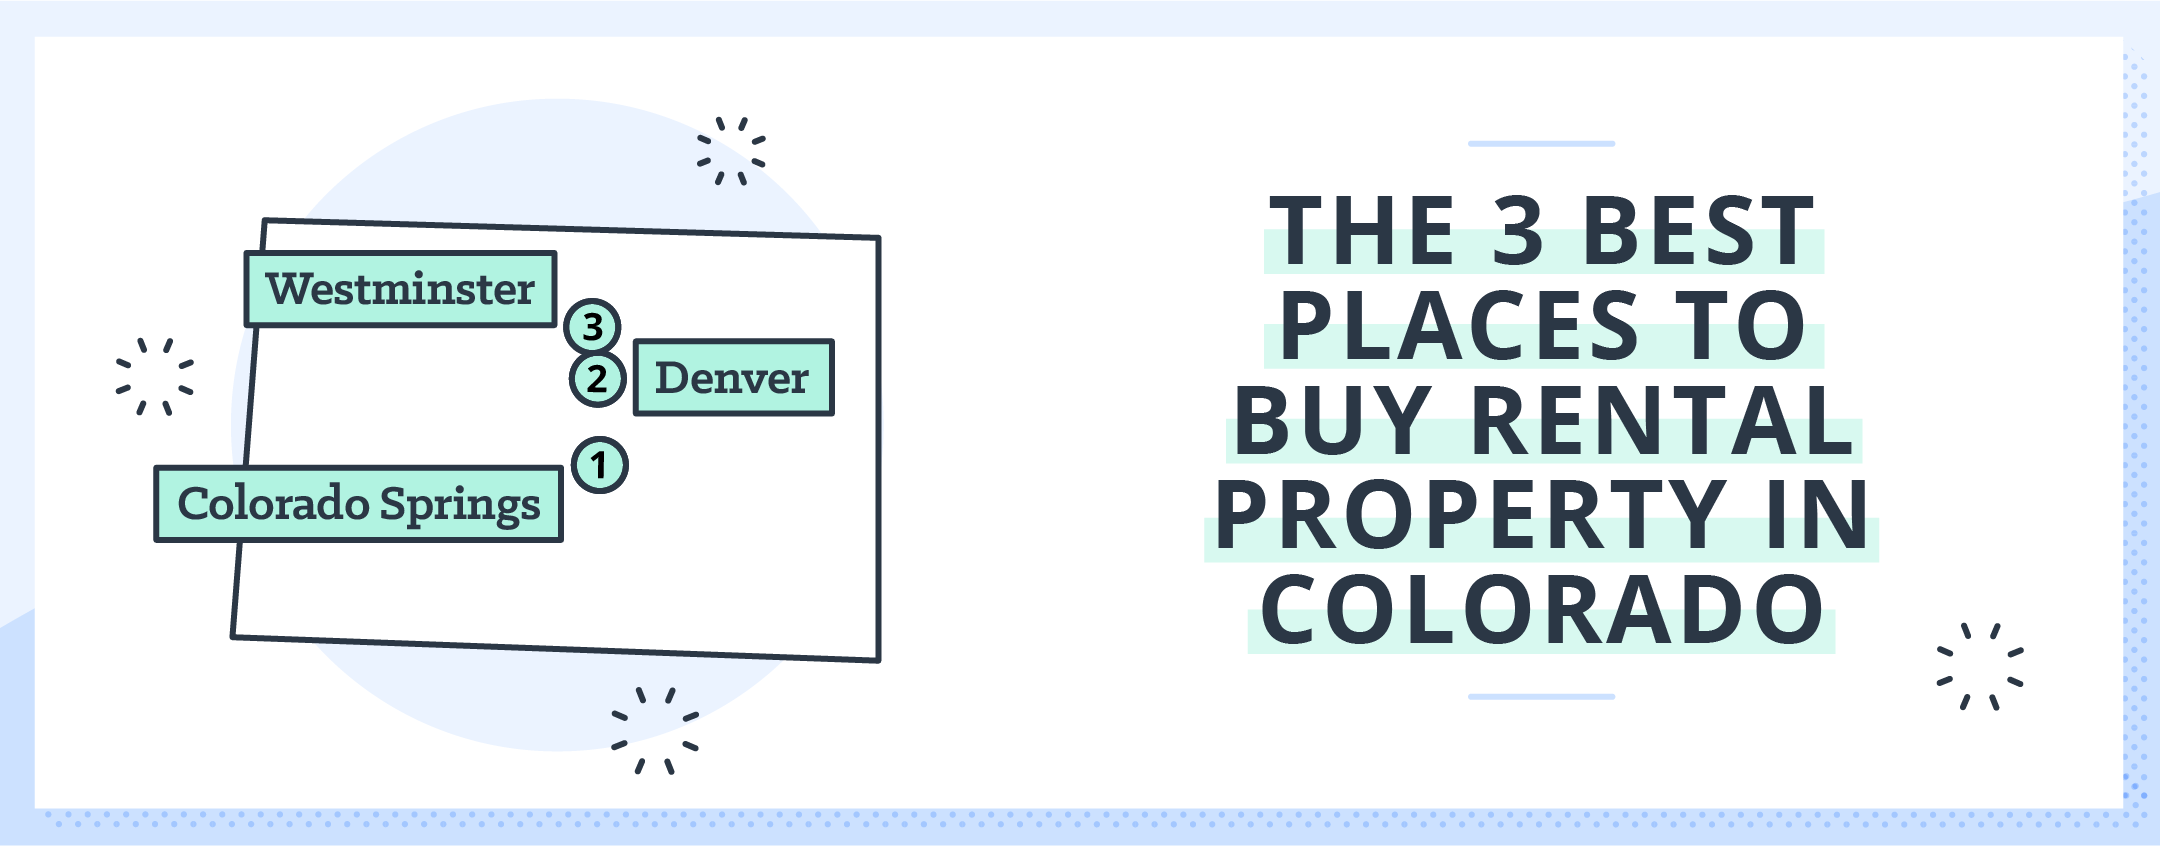 Colorado Rental Property Map